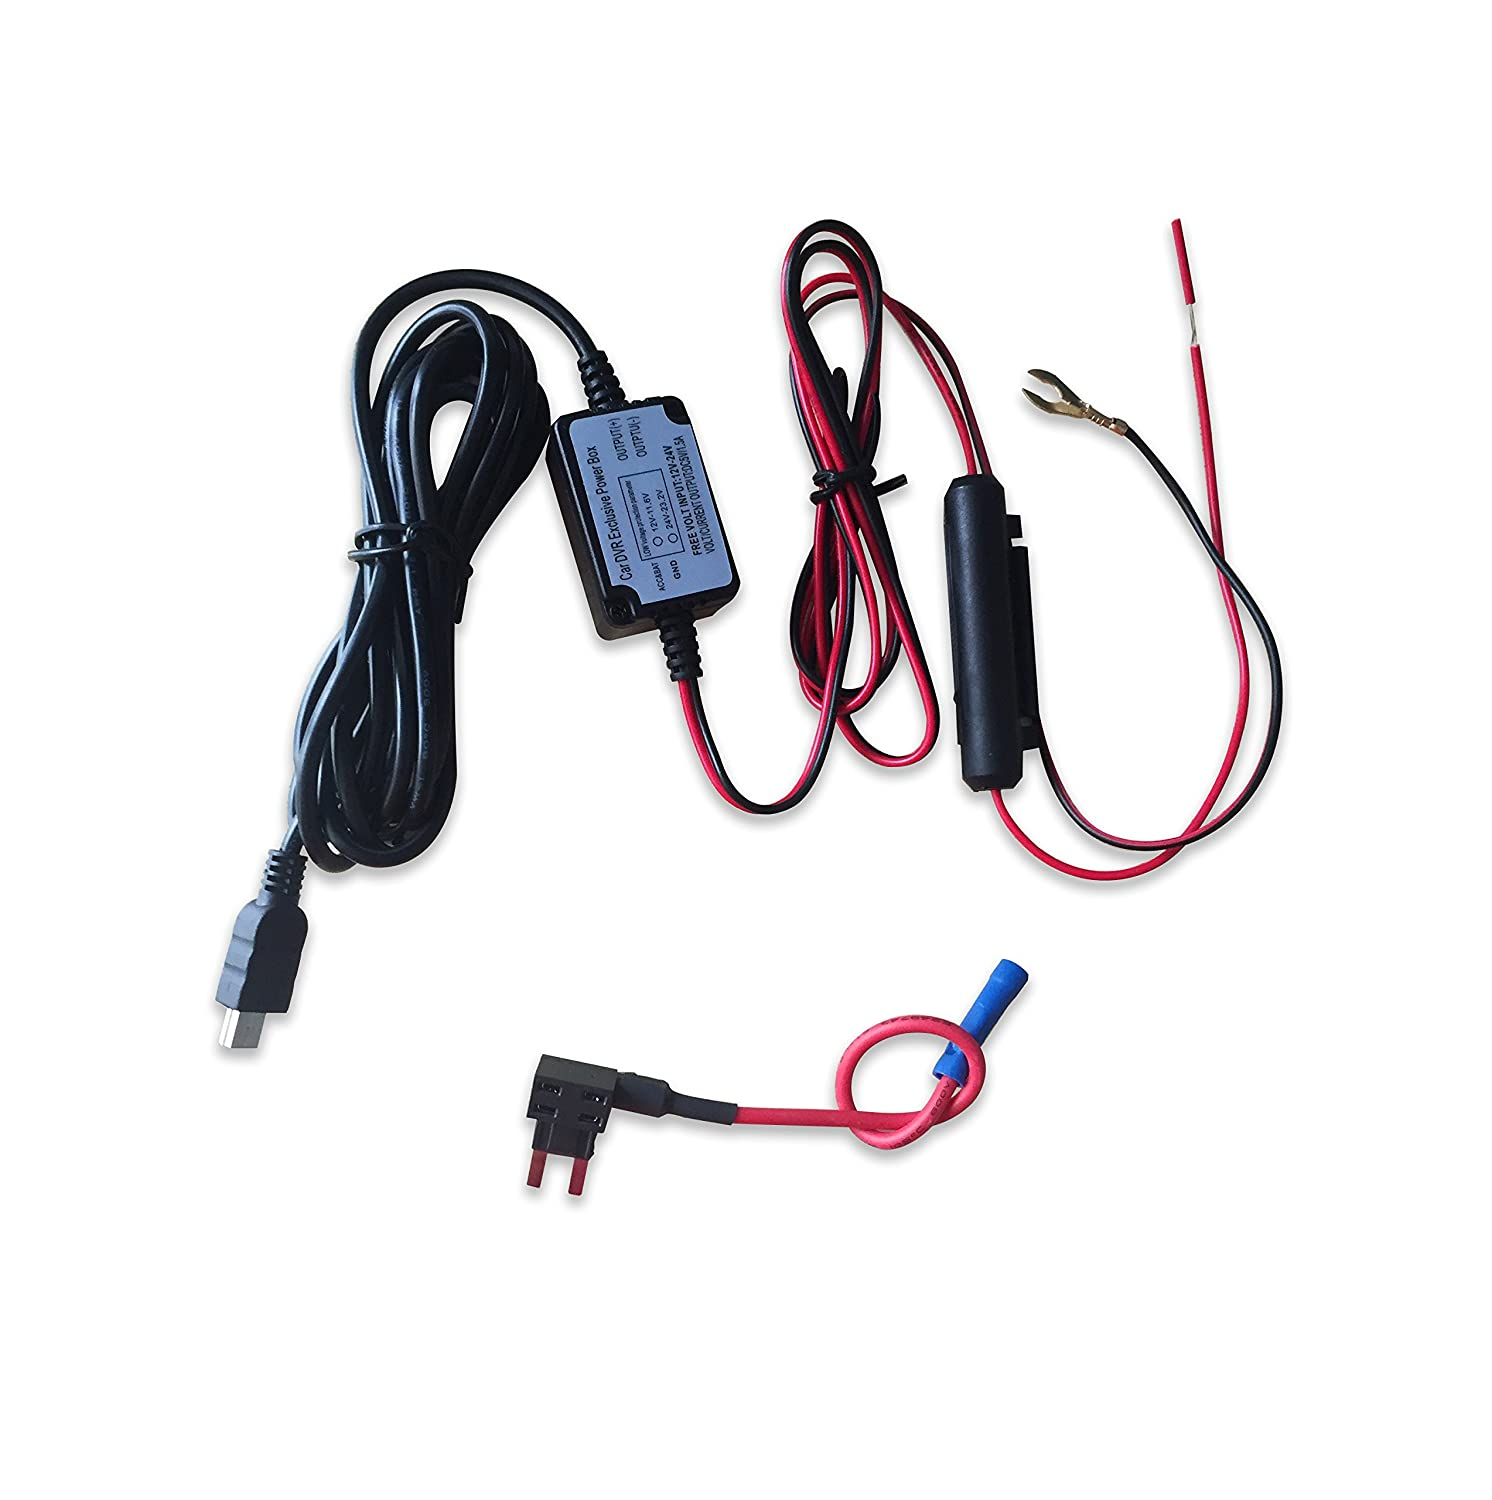 81vasrBJwWL._SL1500_ amazon com wocst car camera hard wire kit mini usb dash cam 10 House Fuse Box Diagram at edmiracle.co